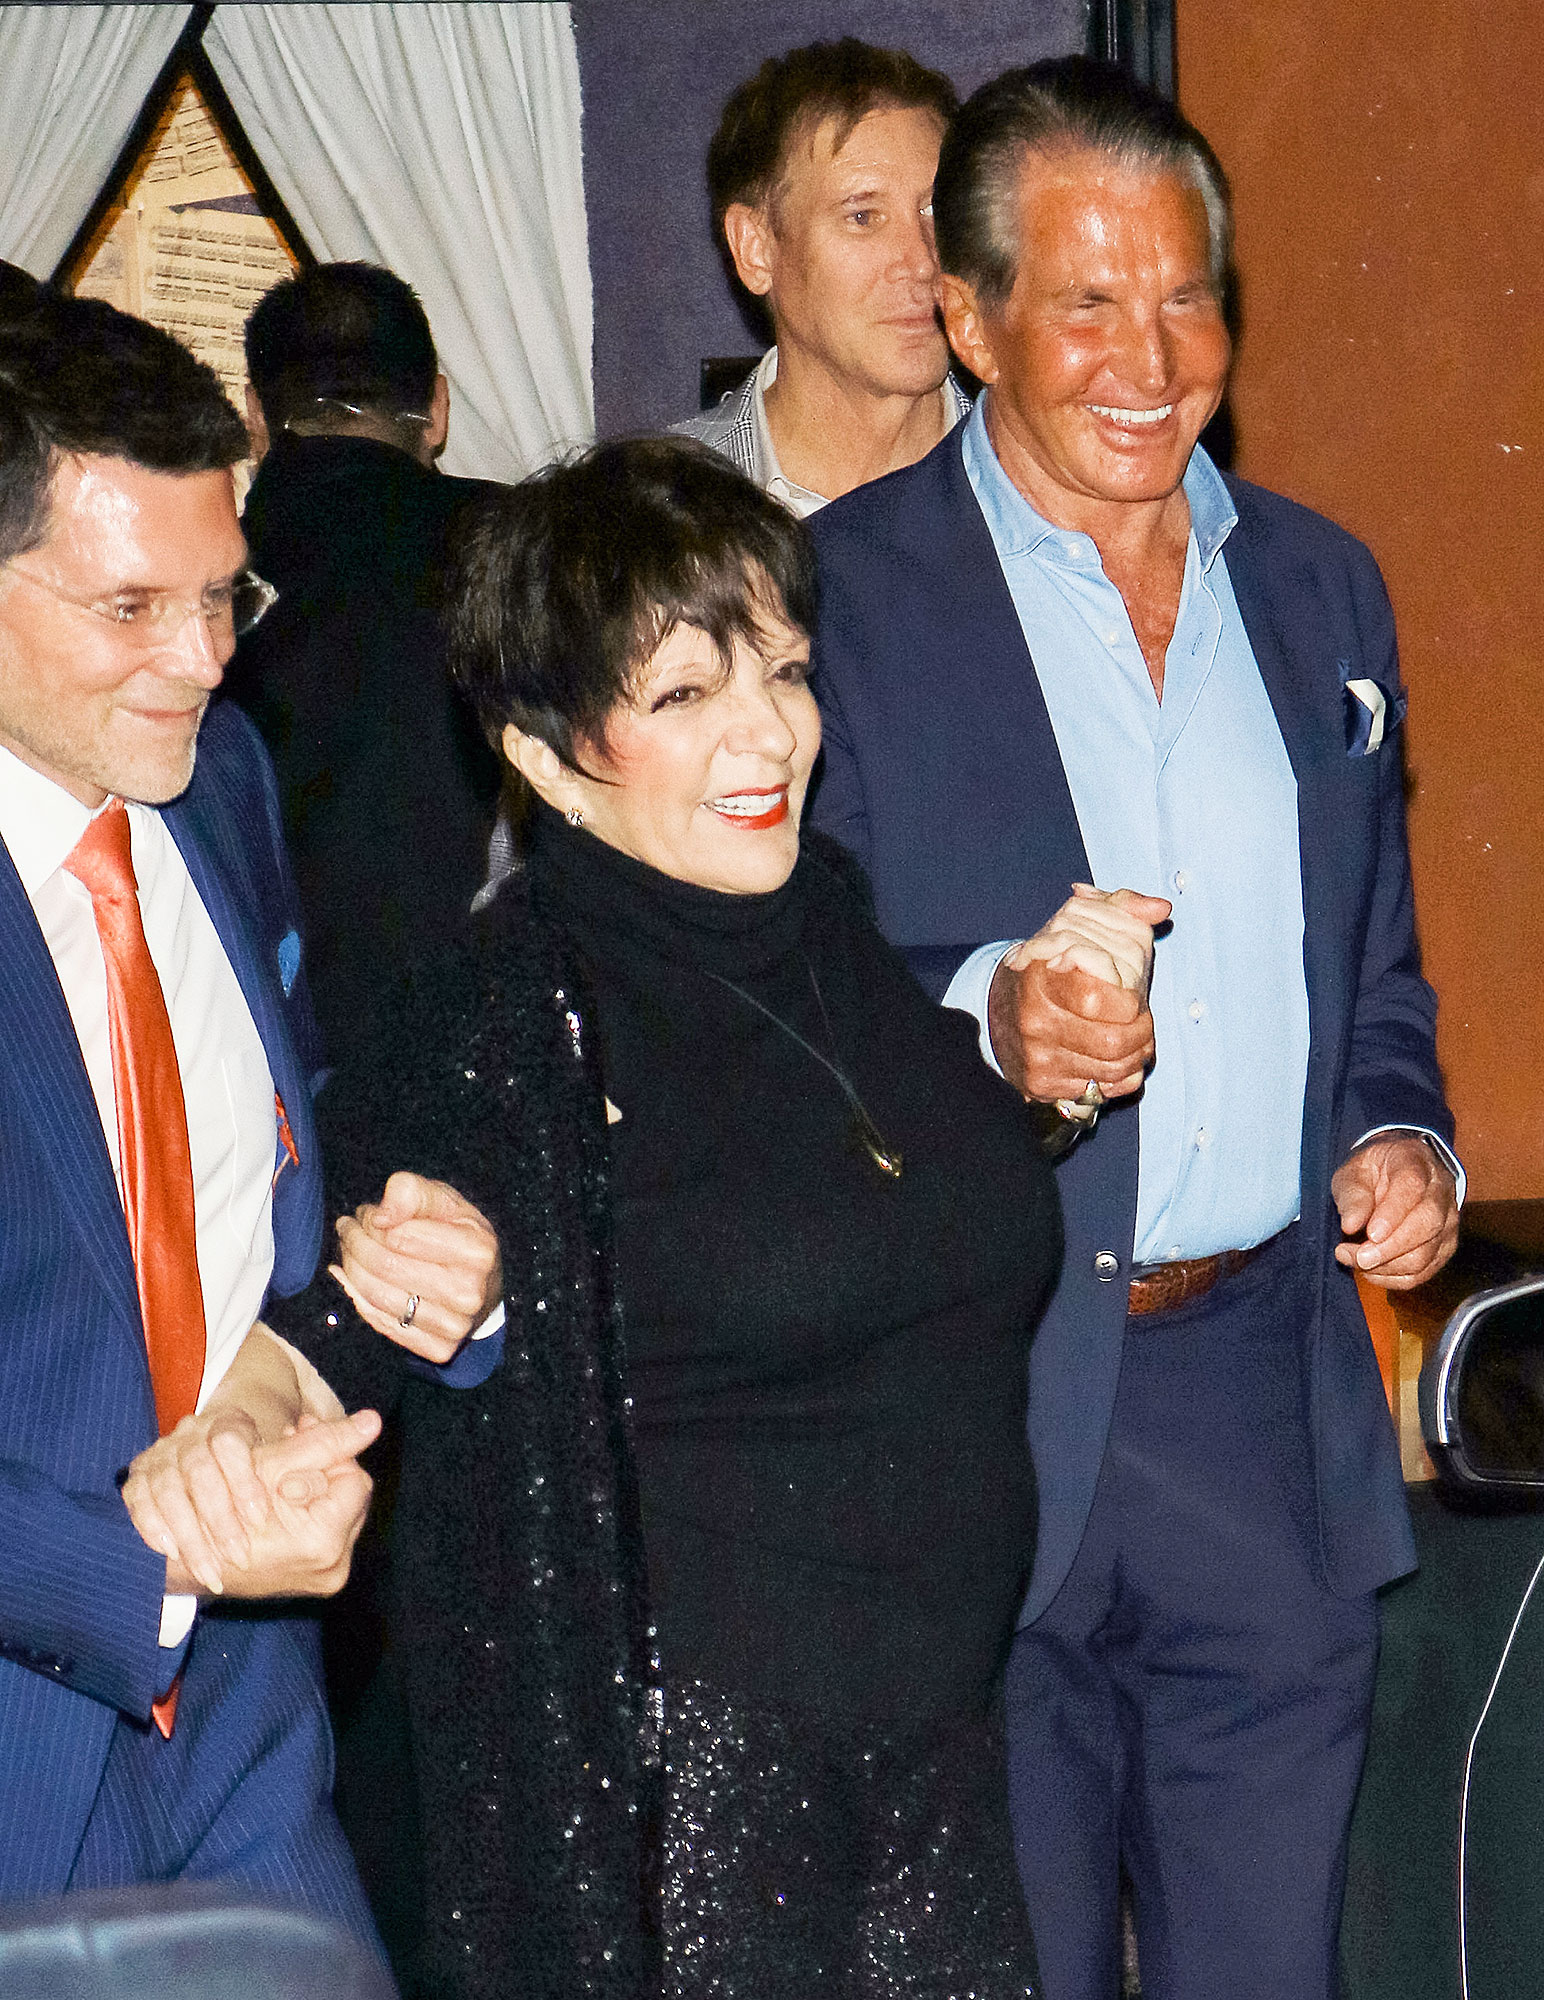 Liza Minnelli and George Hamilton outside Feinstein's at Vitello's in Studio City